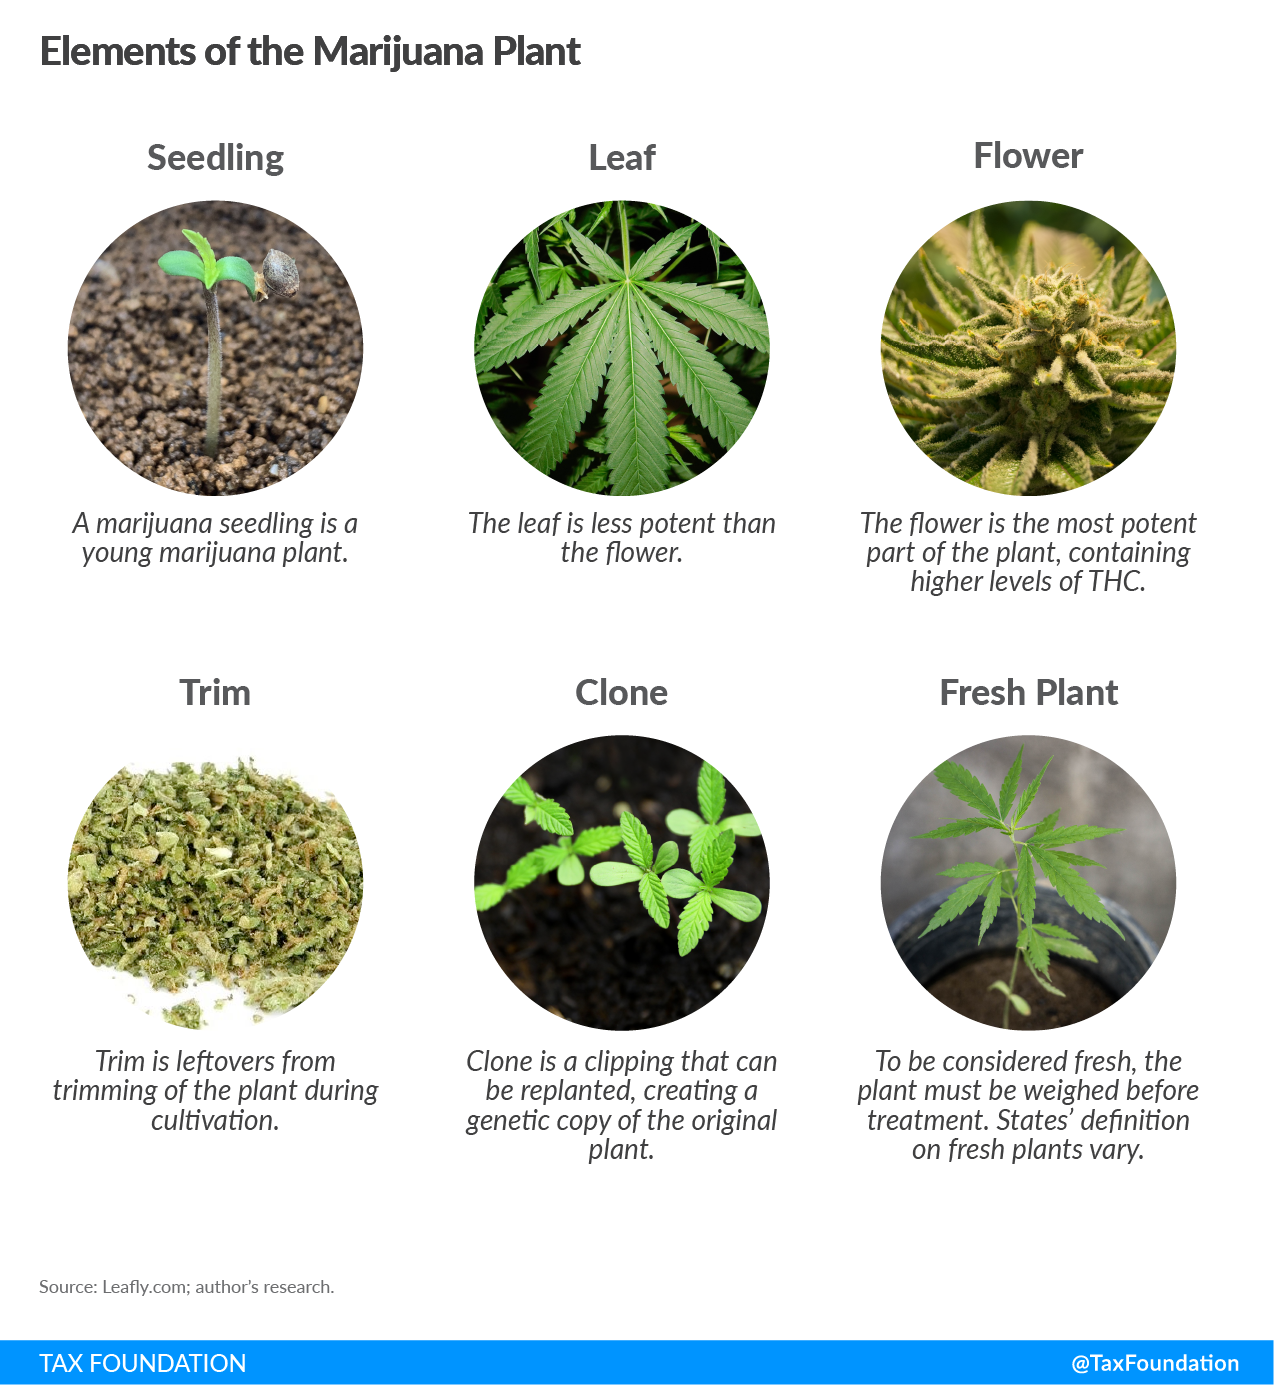 Elements of the Marijuana plant, Recreational marijuana tax, Marijuana taxation, cannabis tax